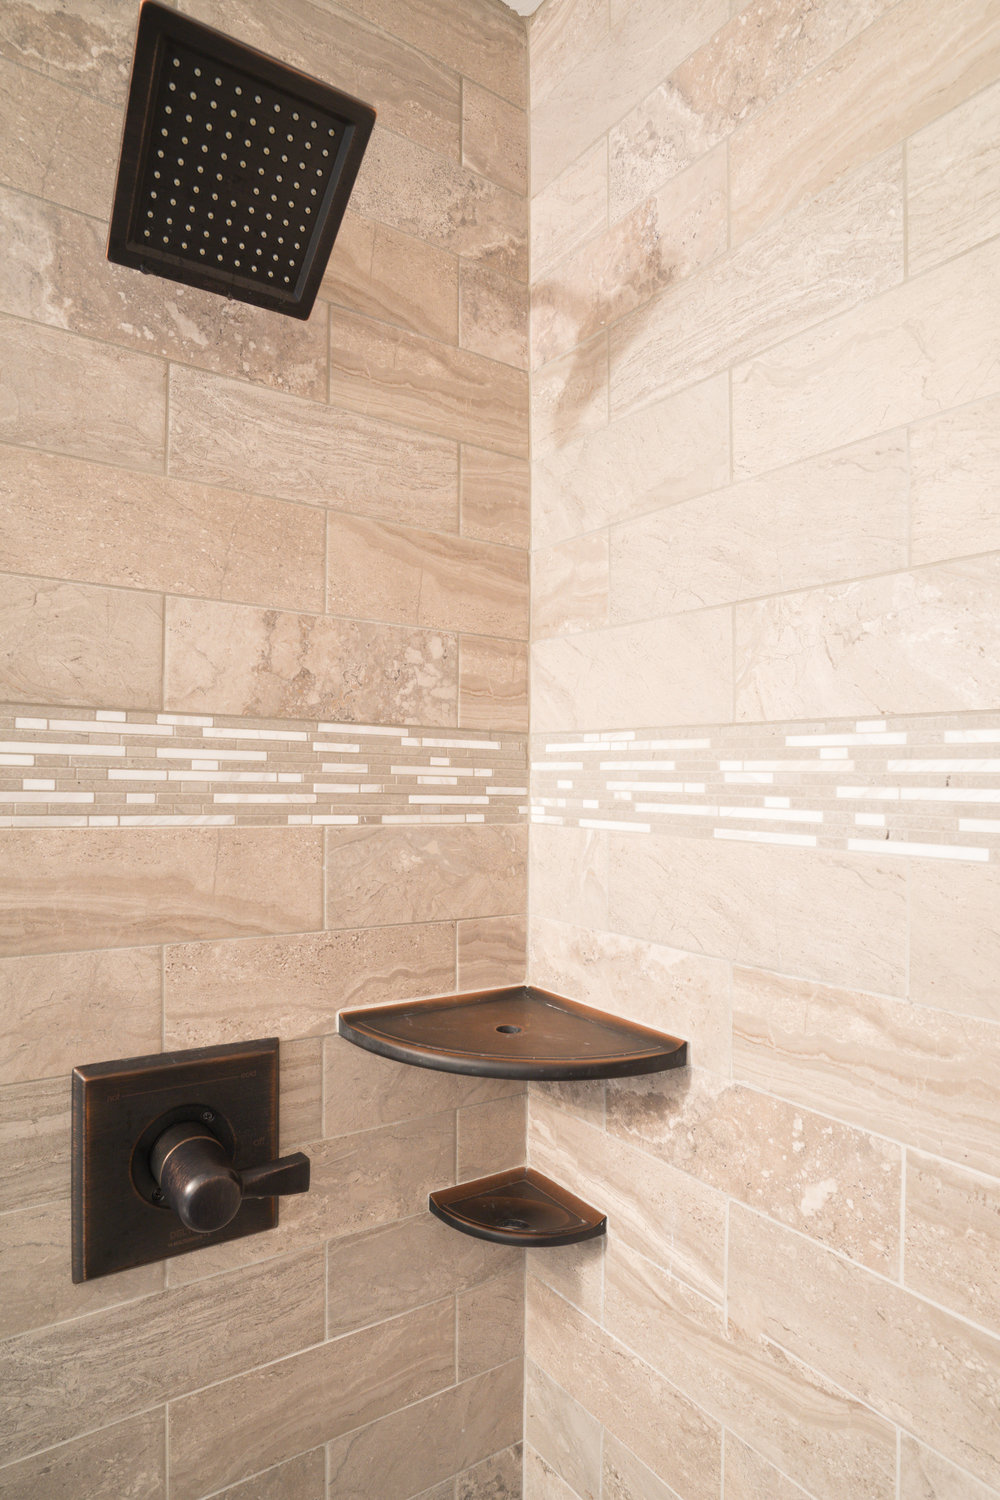 - Subway style tile with mosaic inlay